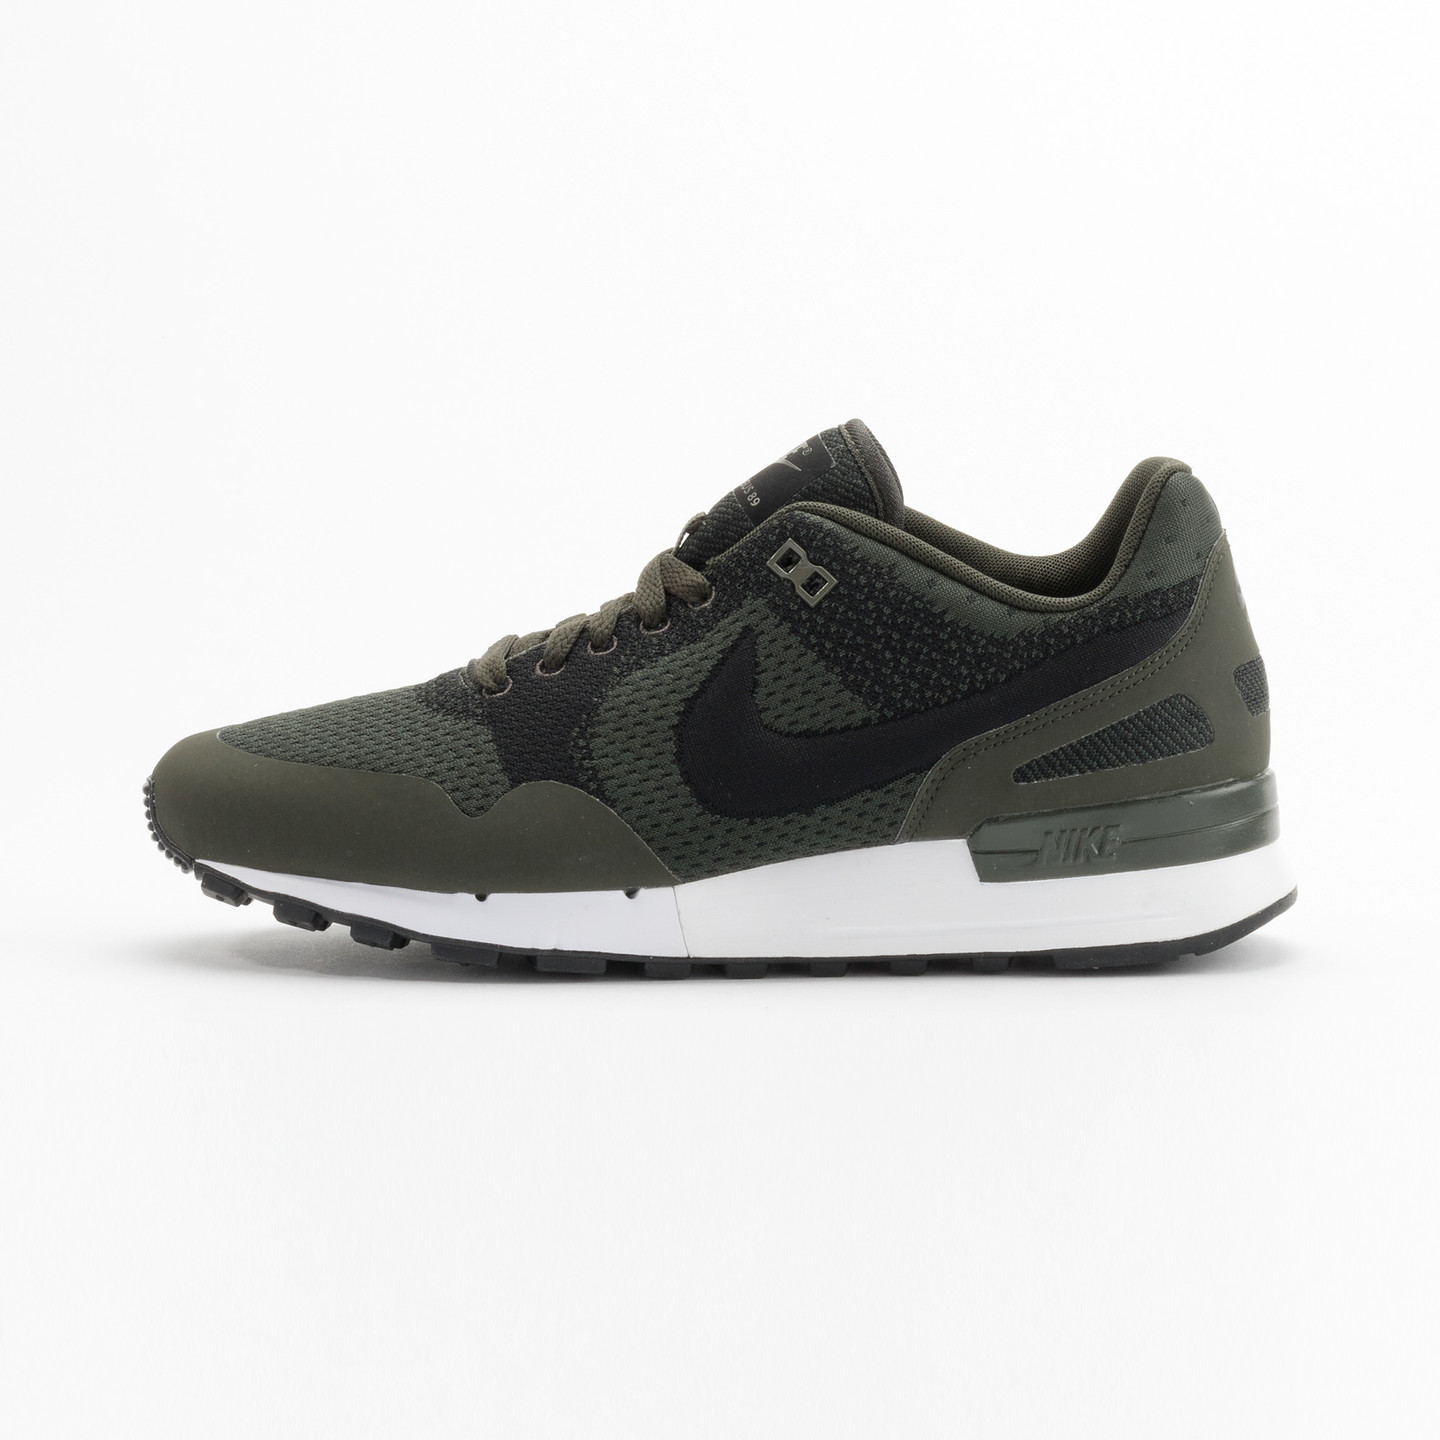 Nike Air Pegasus ´89 Jacquard Sequoia / Black / White 844751-300-41